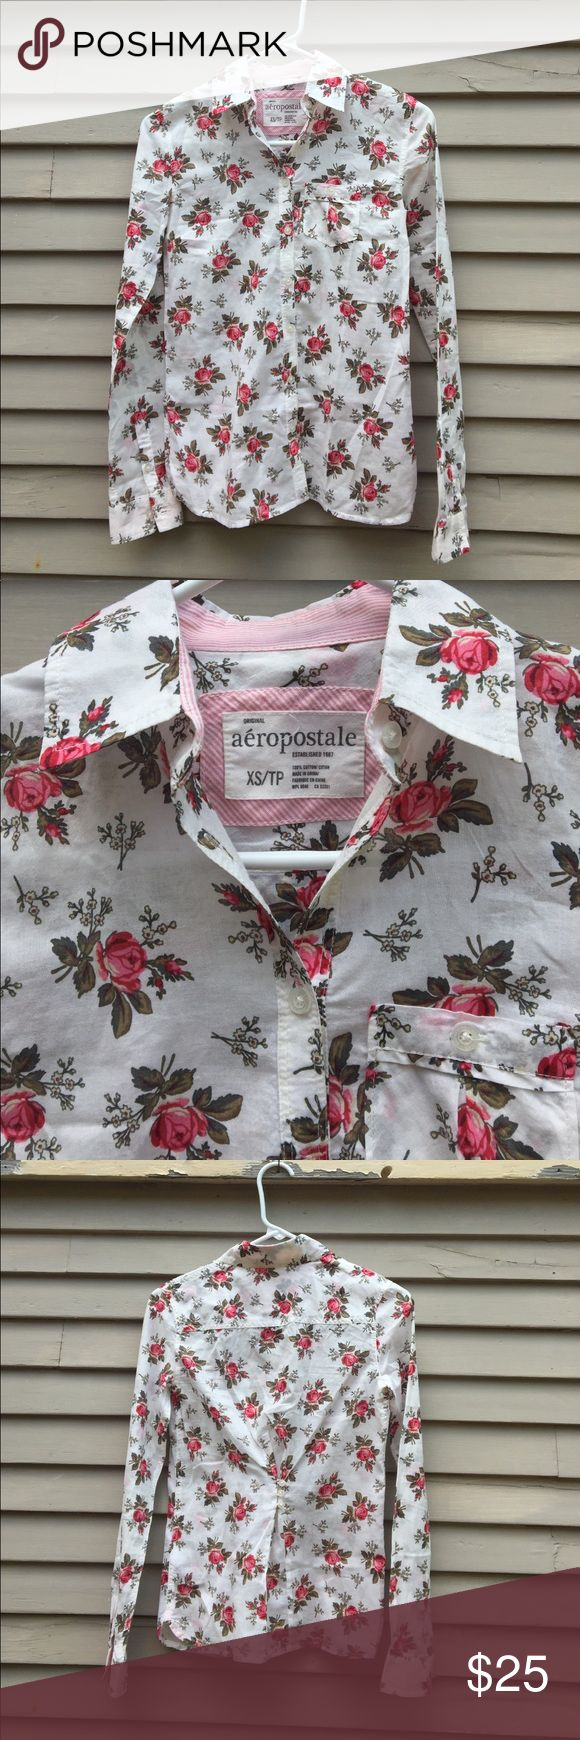 Aeropostale button down white roses floral summer Like new! Perfect condition. Small buttons cinch the shirt a little in the back. Lightweight handkerchief weight cotton and perfect for summer. Aeropostale Tops Button Down Shirts